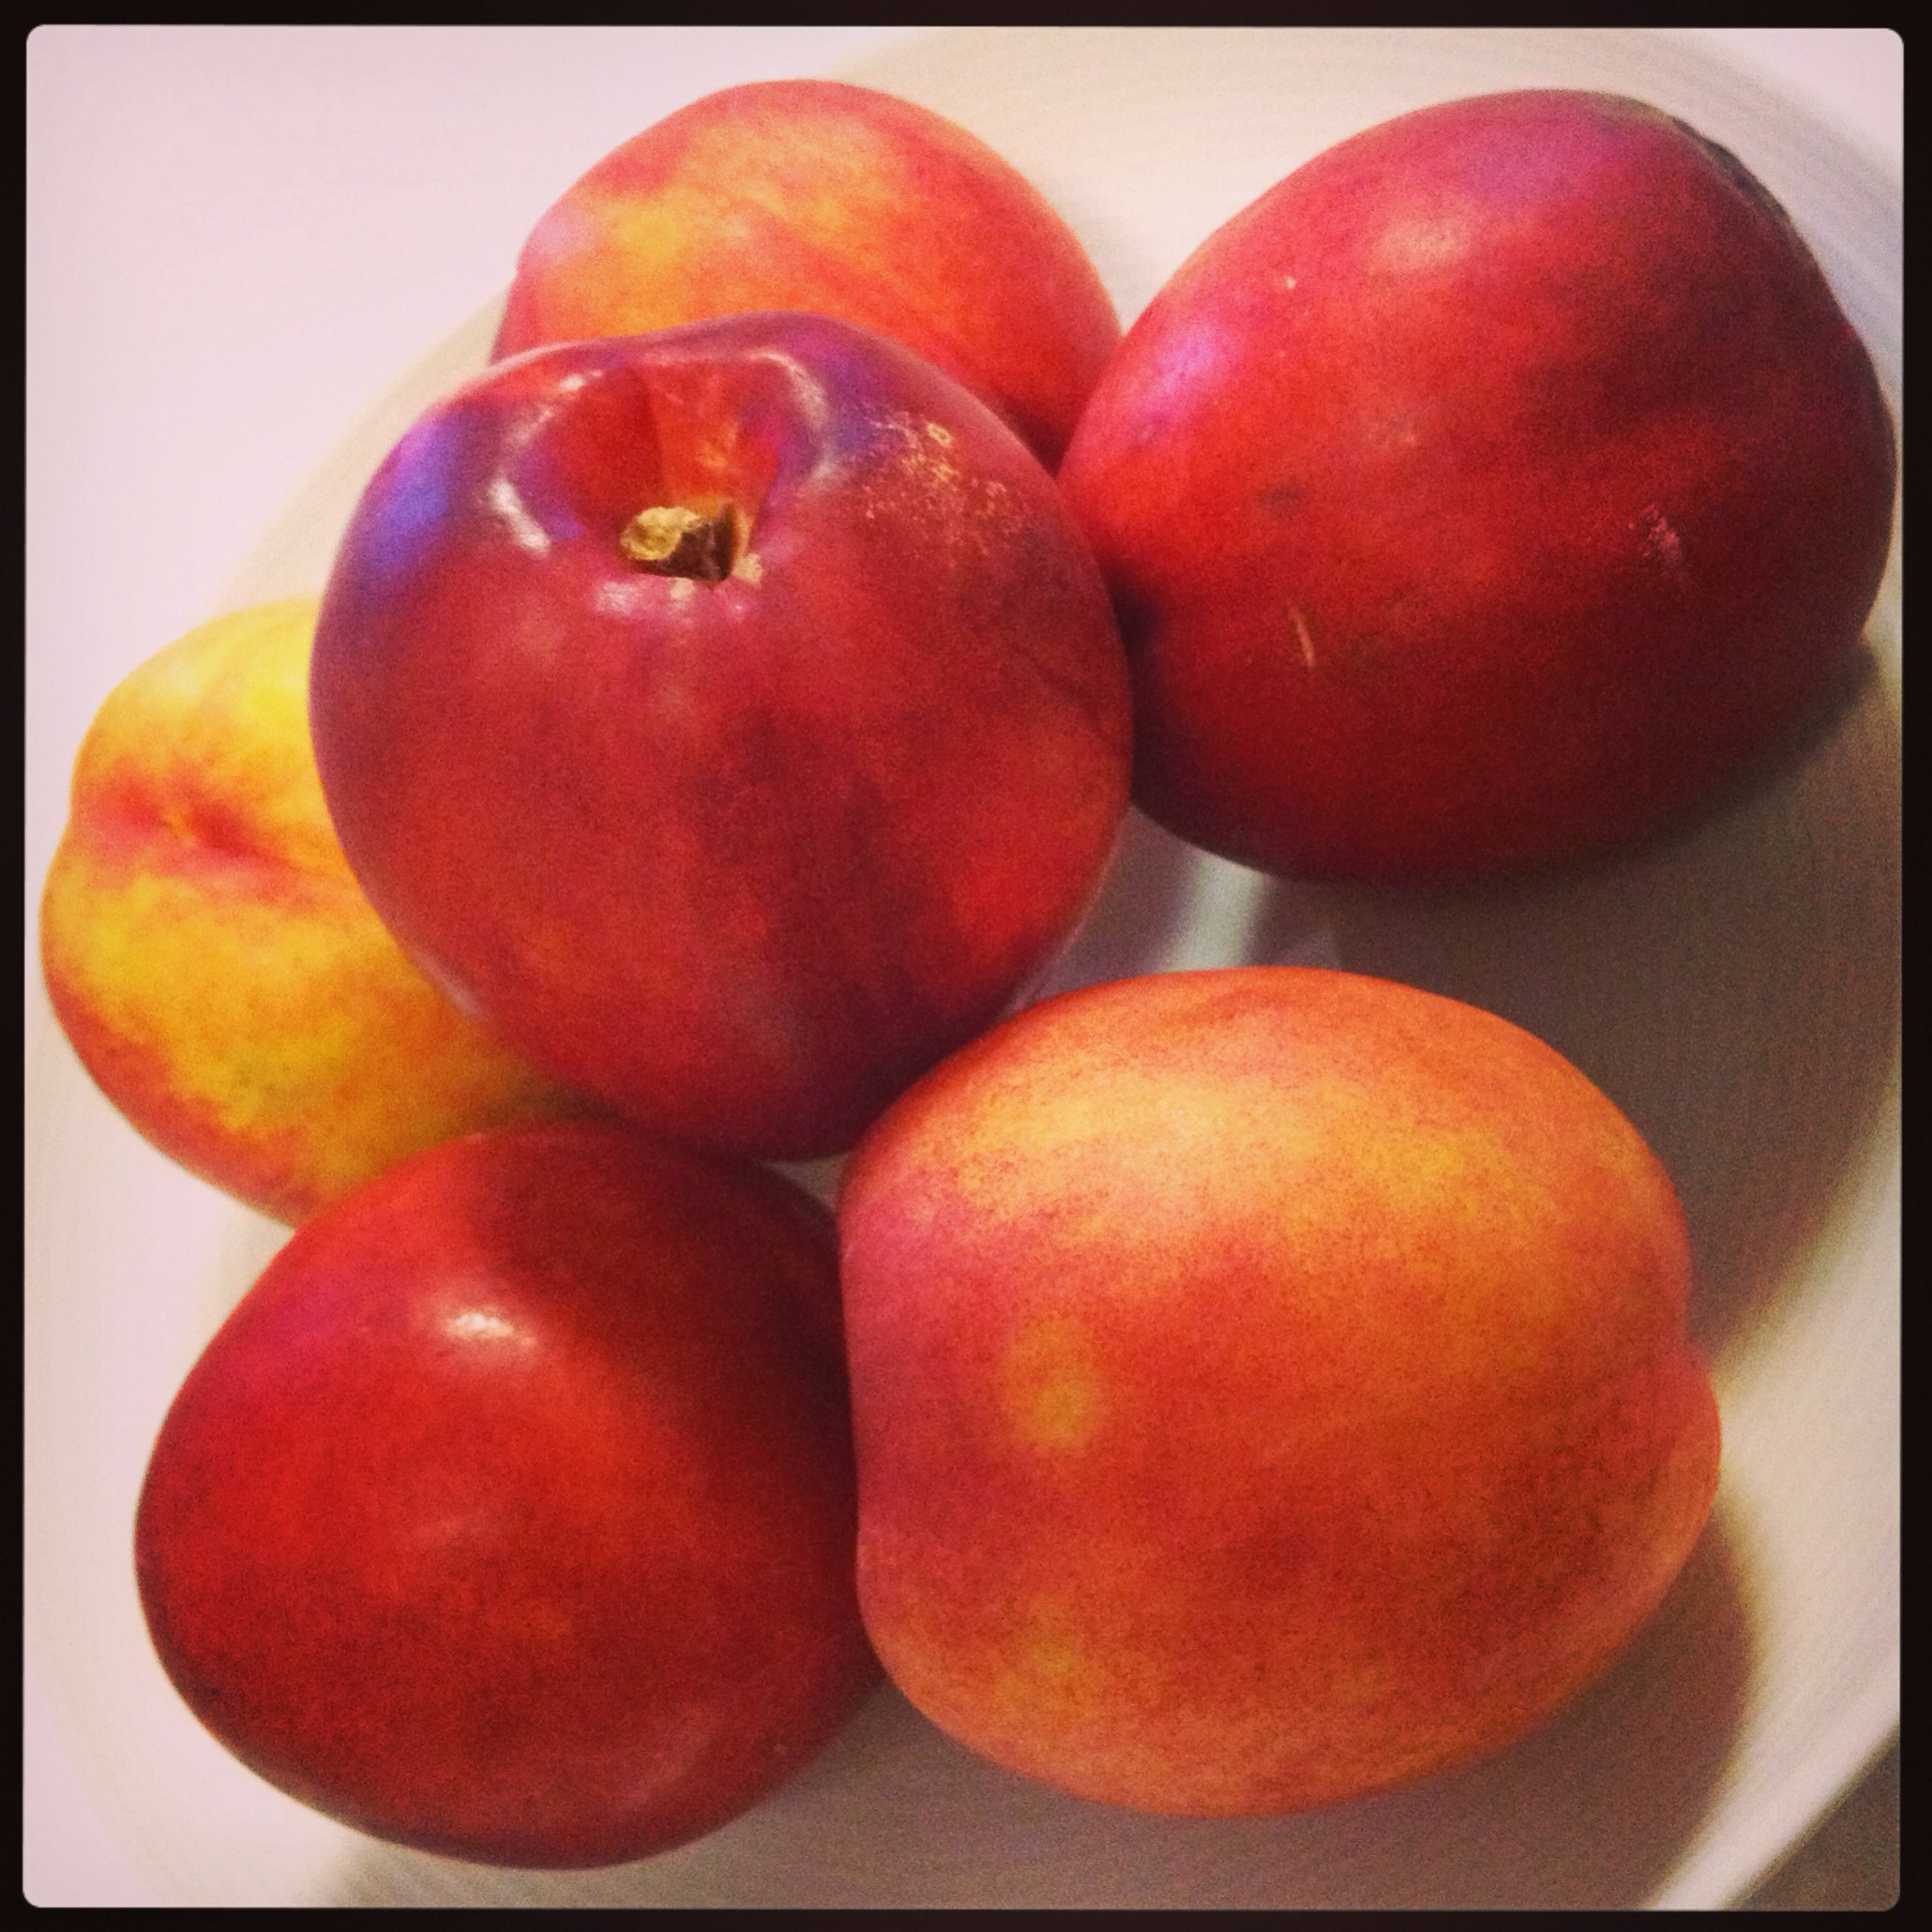 The hairless and smaller version of our peach, the nectarine. They can be smaller or bigger, and depending on the size, they can even look like mini apples! I only like nectarines when they are soft and ripe. Some people prefer them when they are crunchy and less ripe.